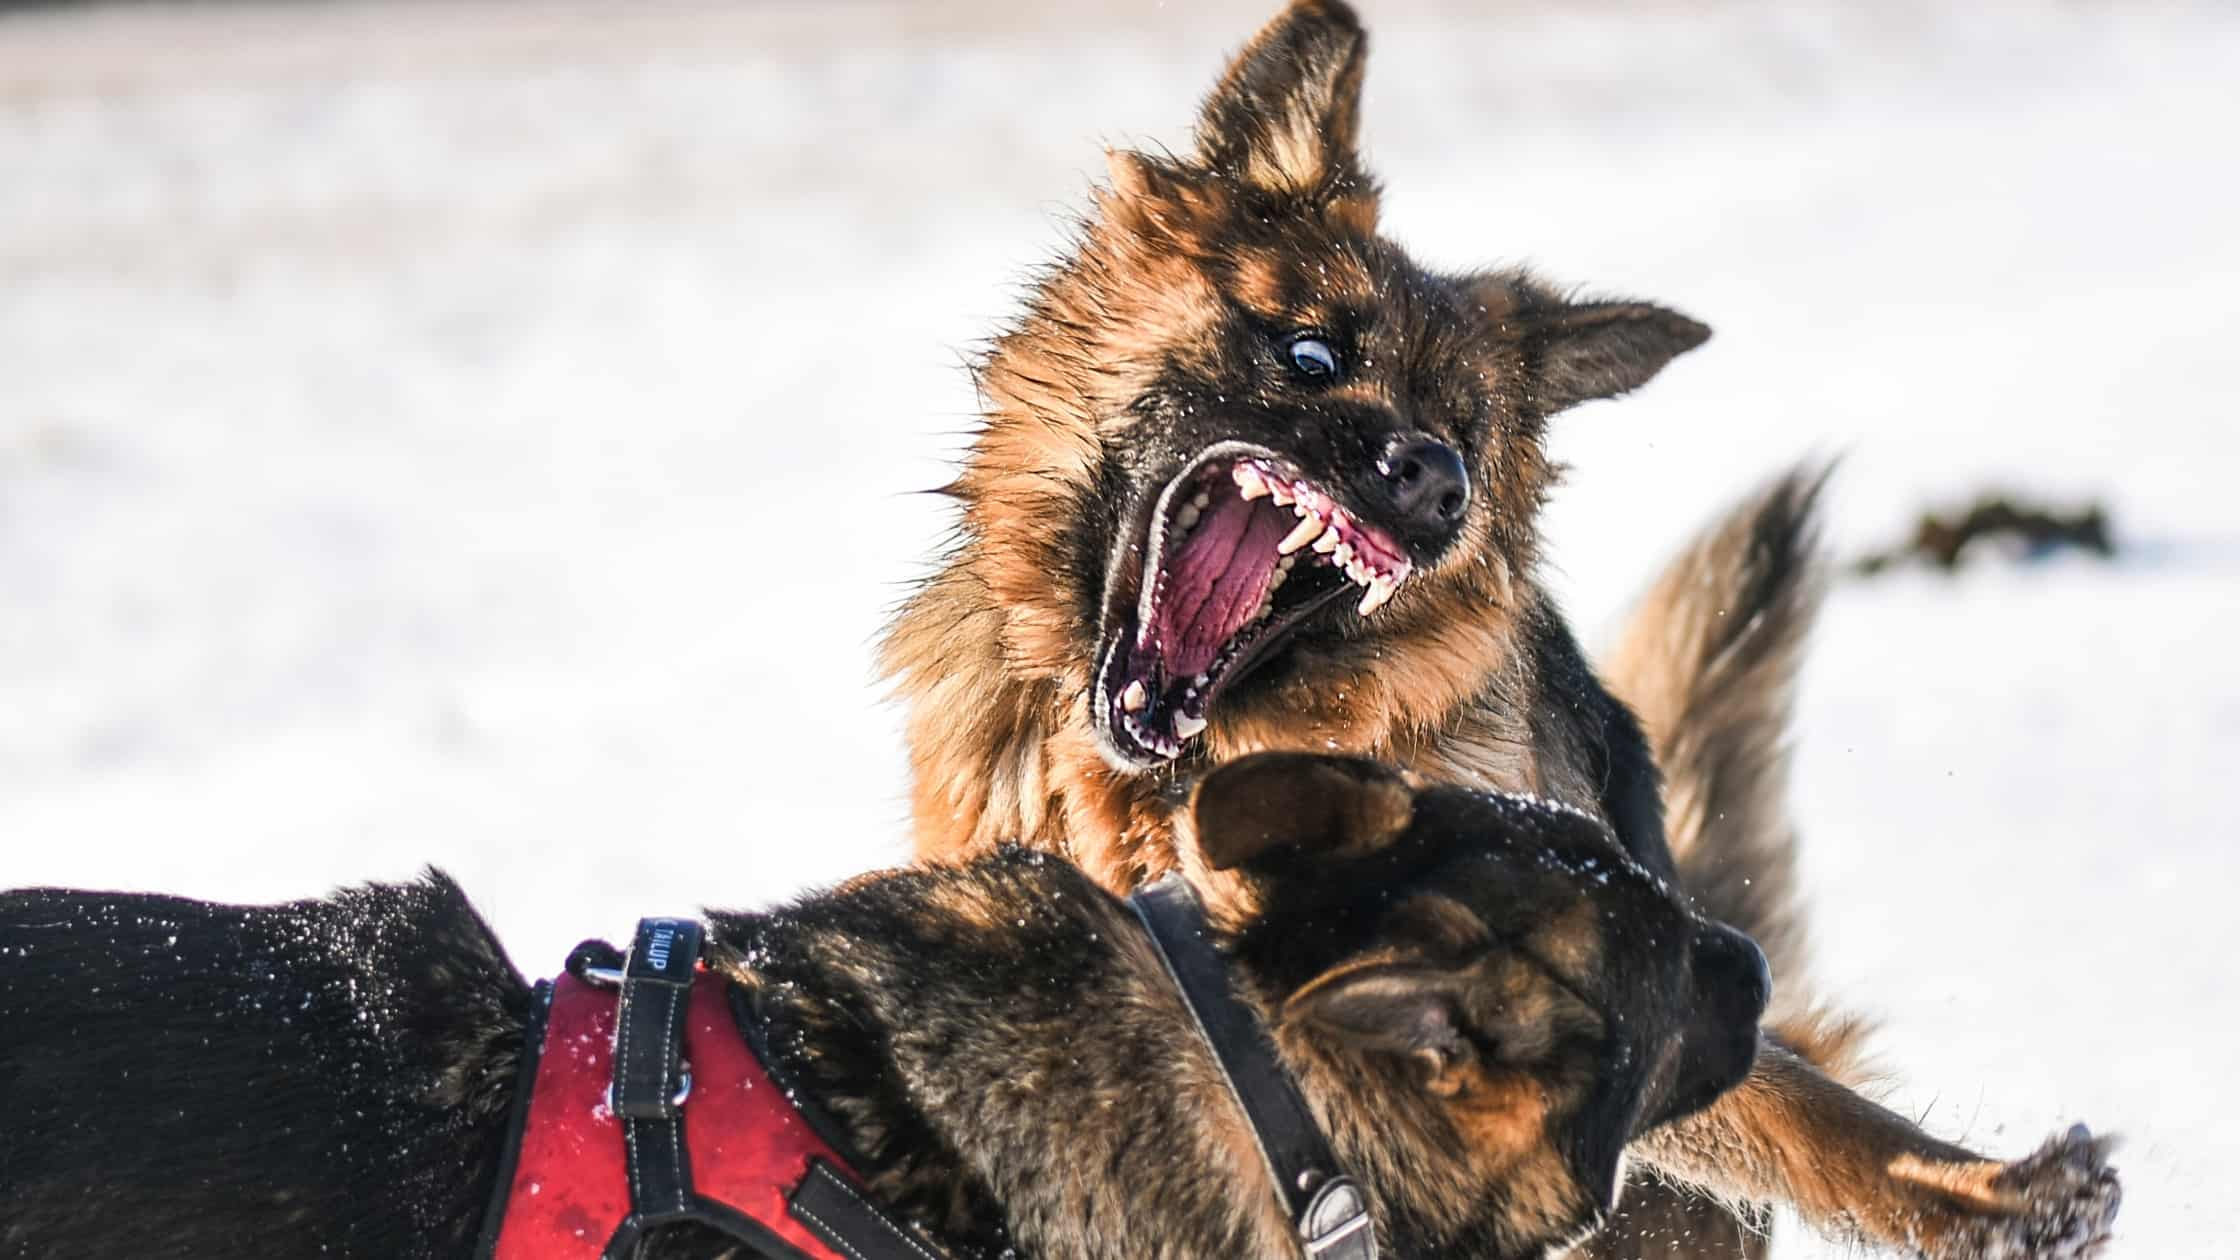 aggressive dog attacking another dog in the snow.